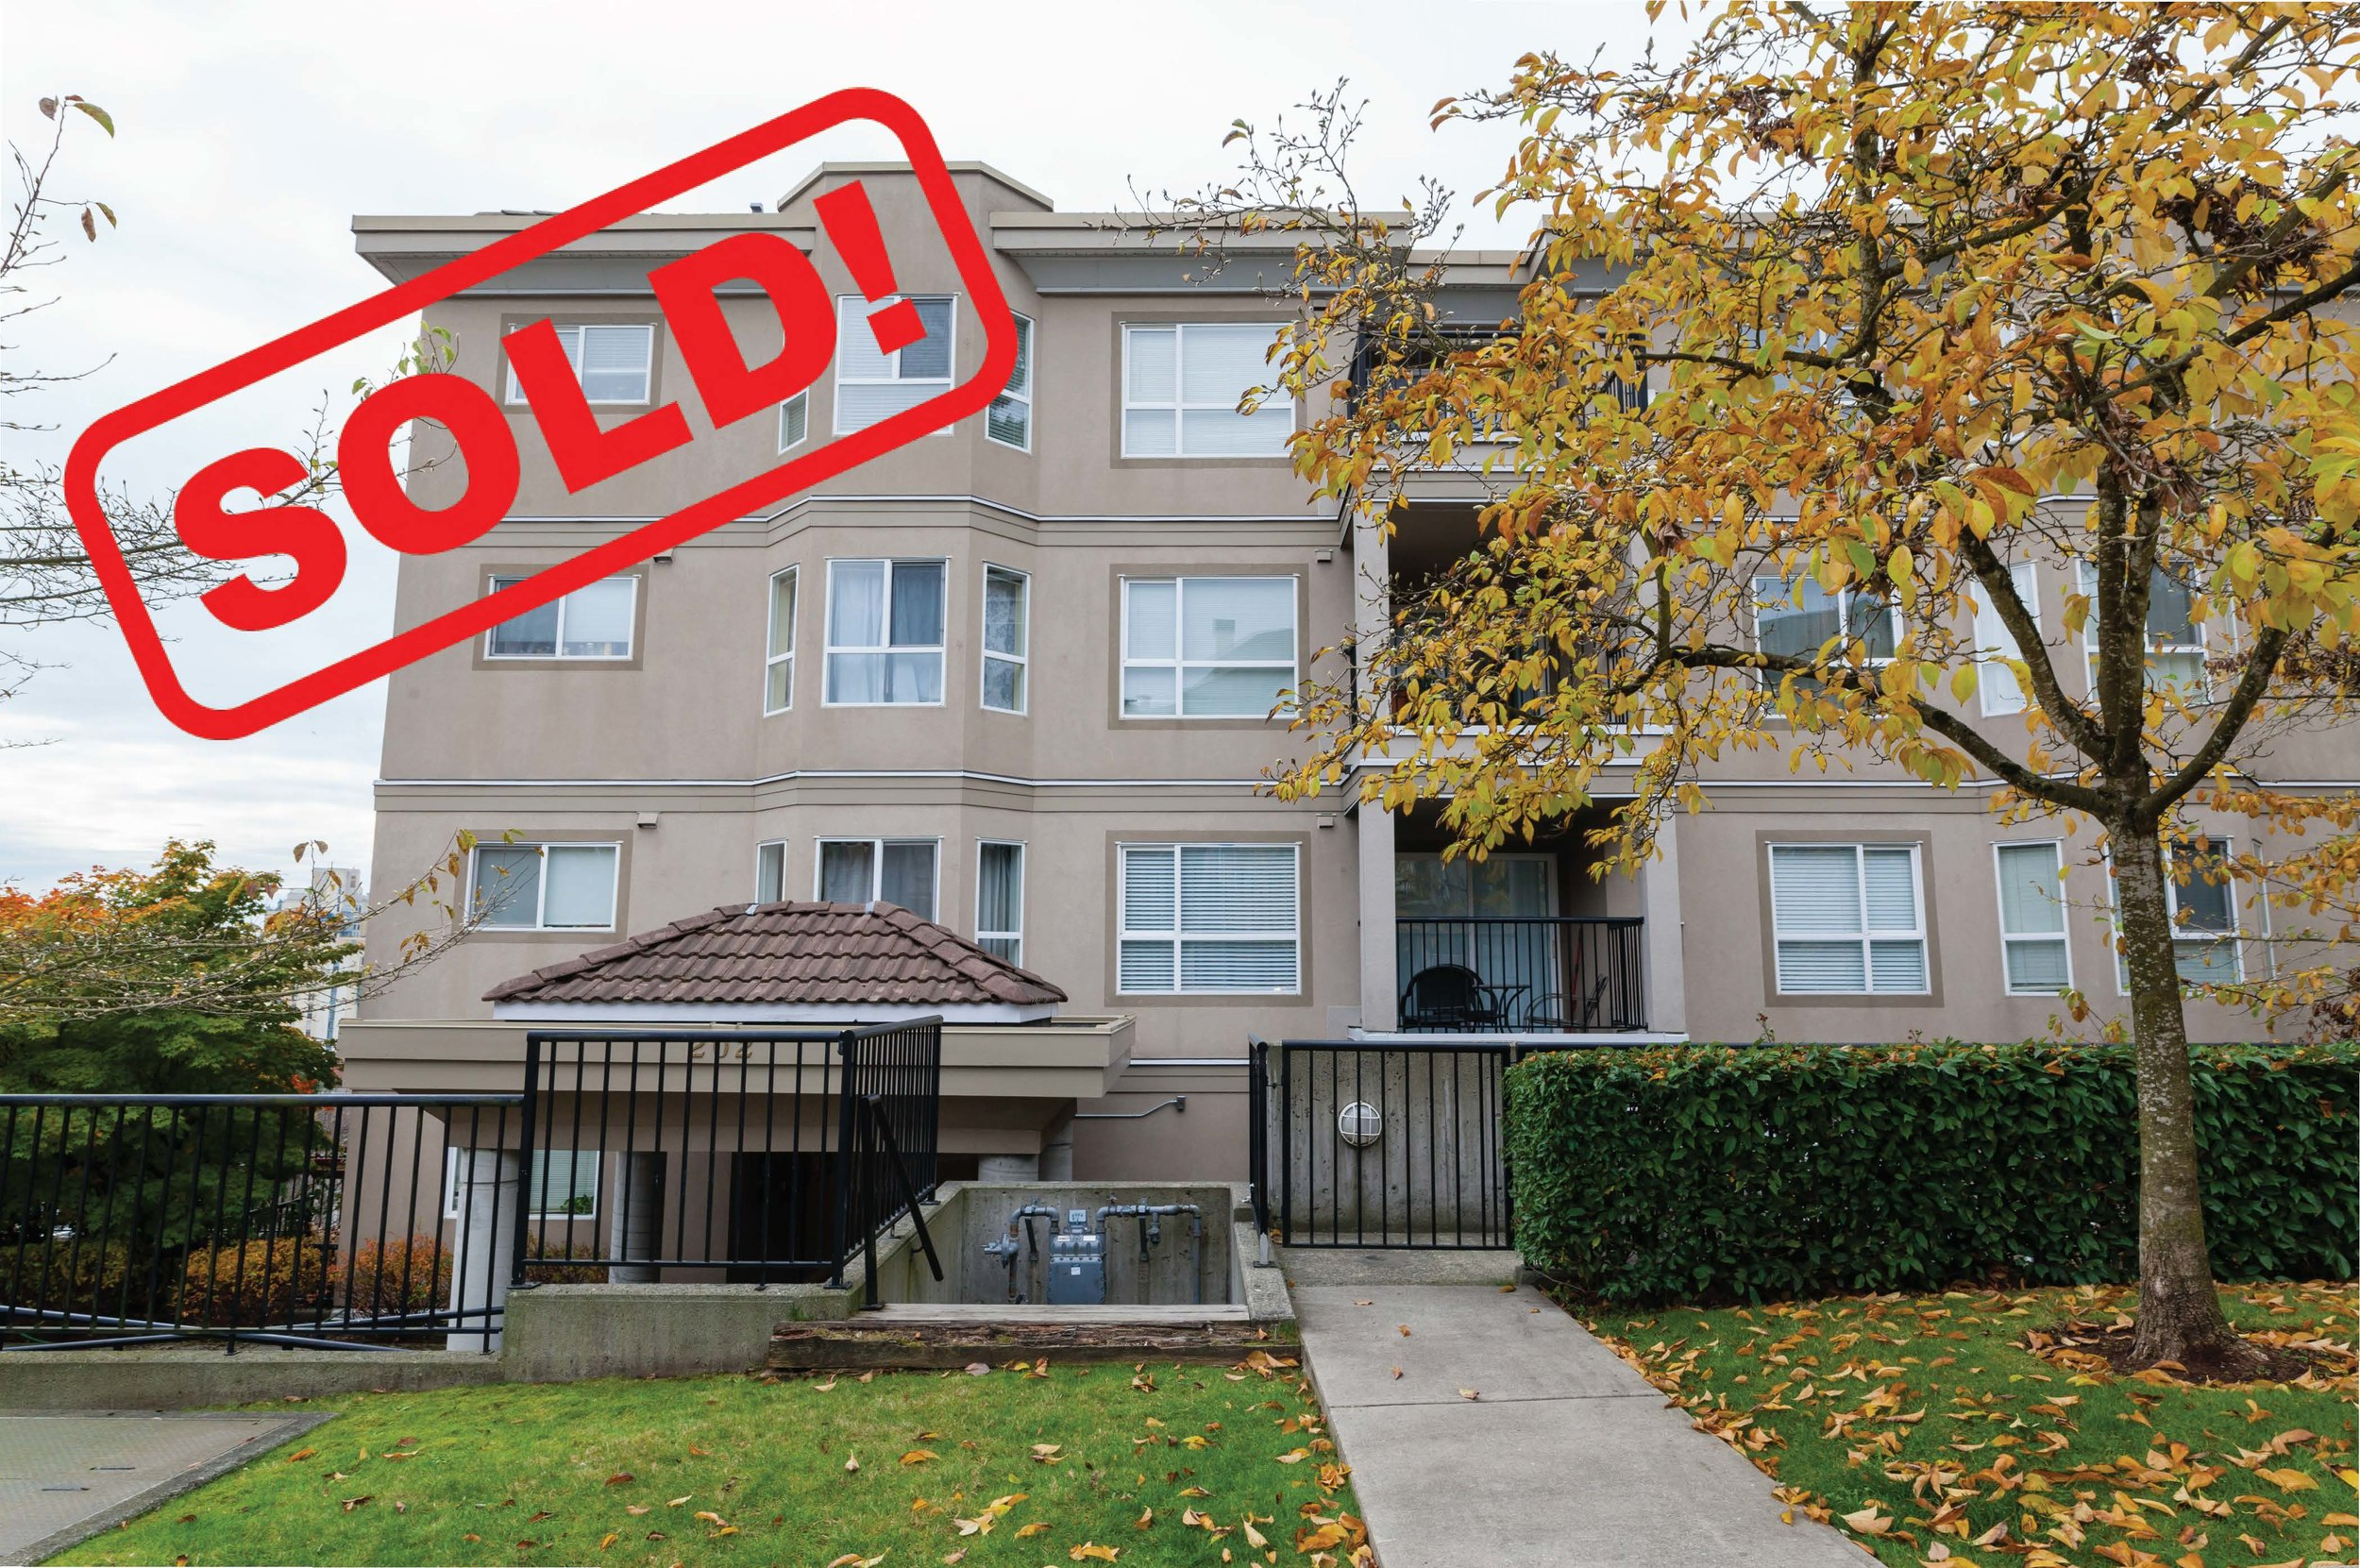 202-202 Mowat Street   SOLD FOR: $510,000  2 BED | 2 BATH | 930 SF